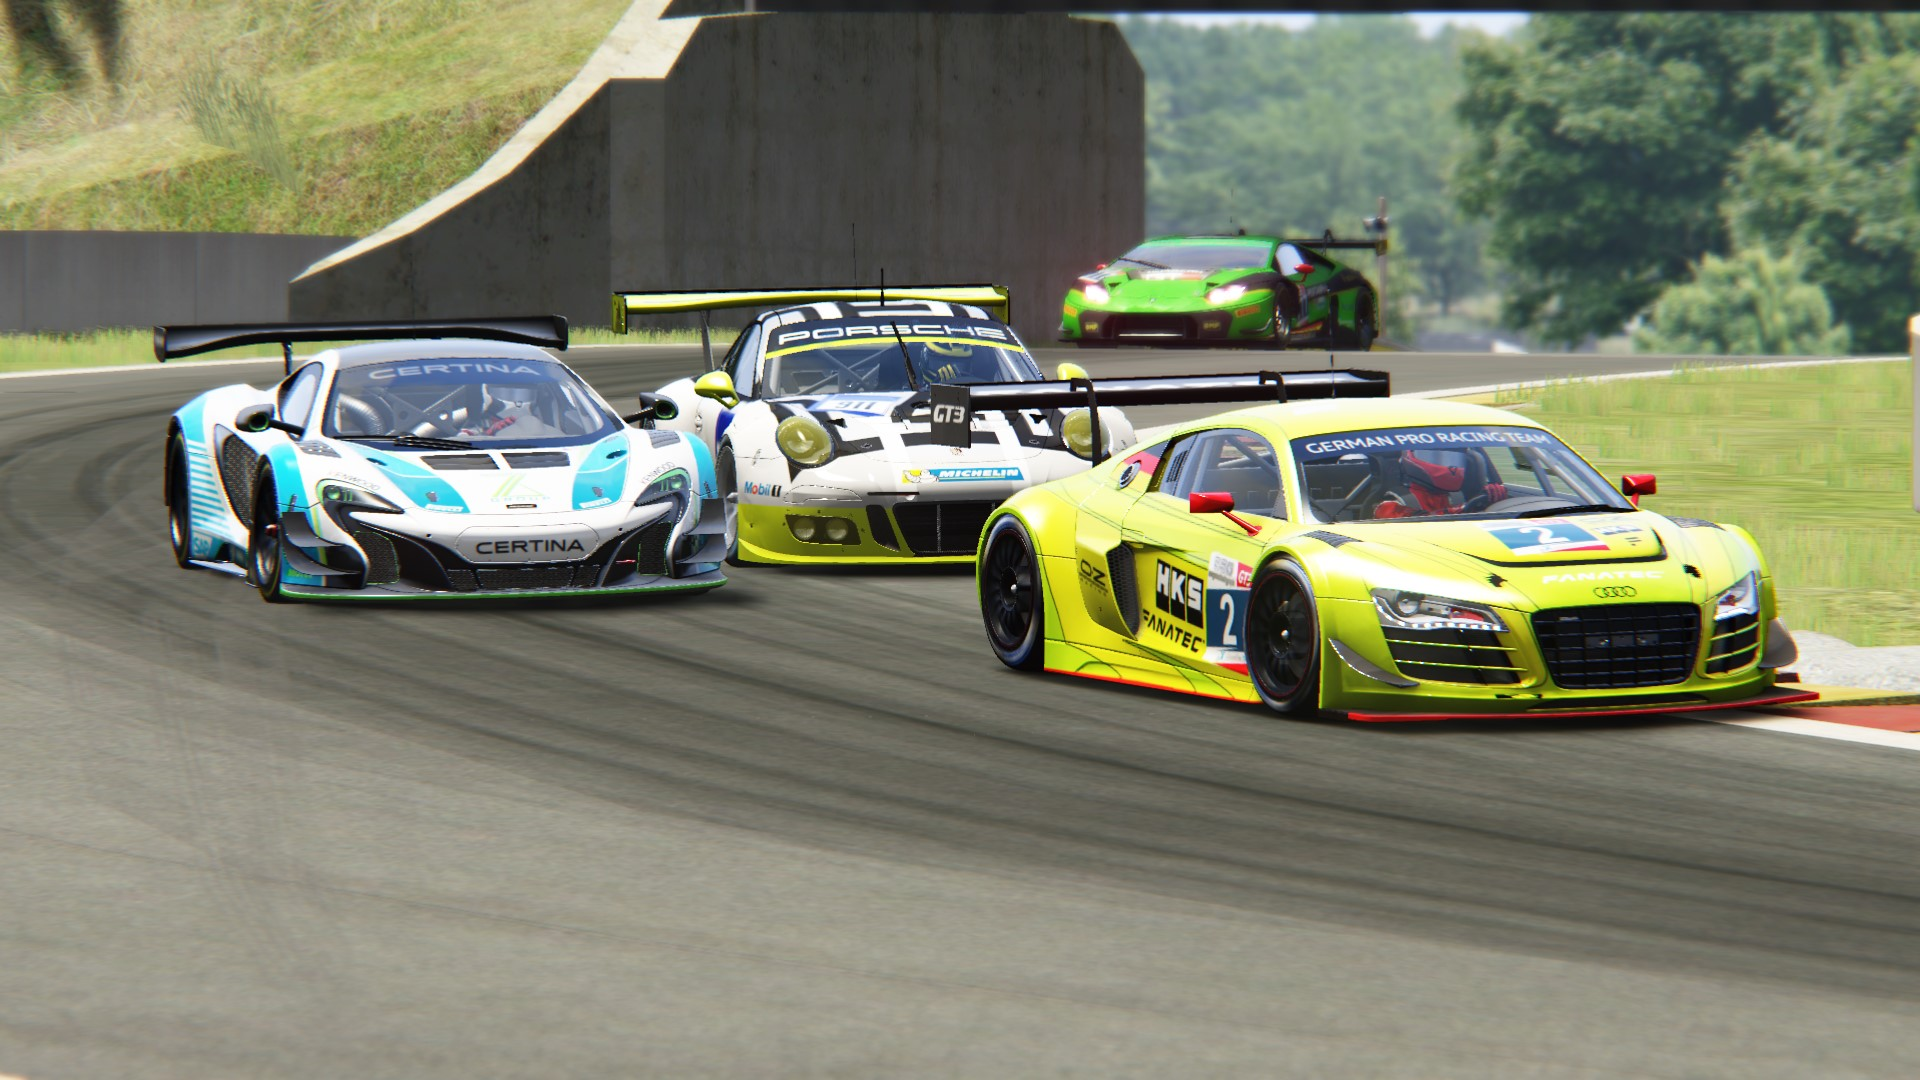 Screenshot_ks_mclaren_650_gt3_road_america_15-4-117-23-54-9.jpg